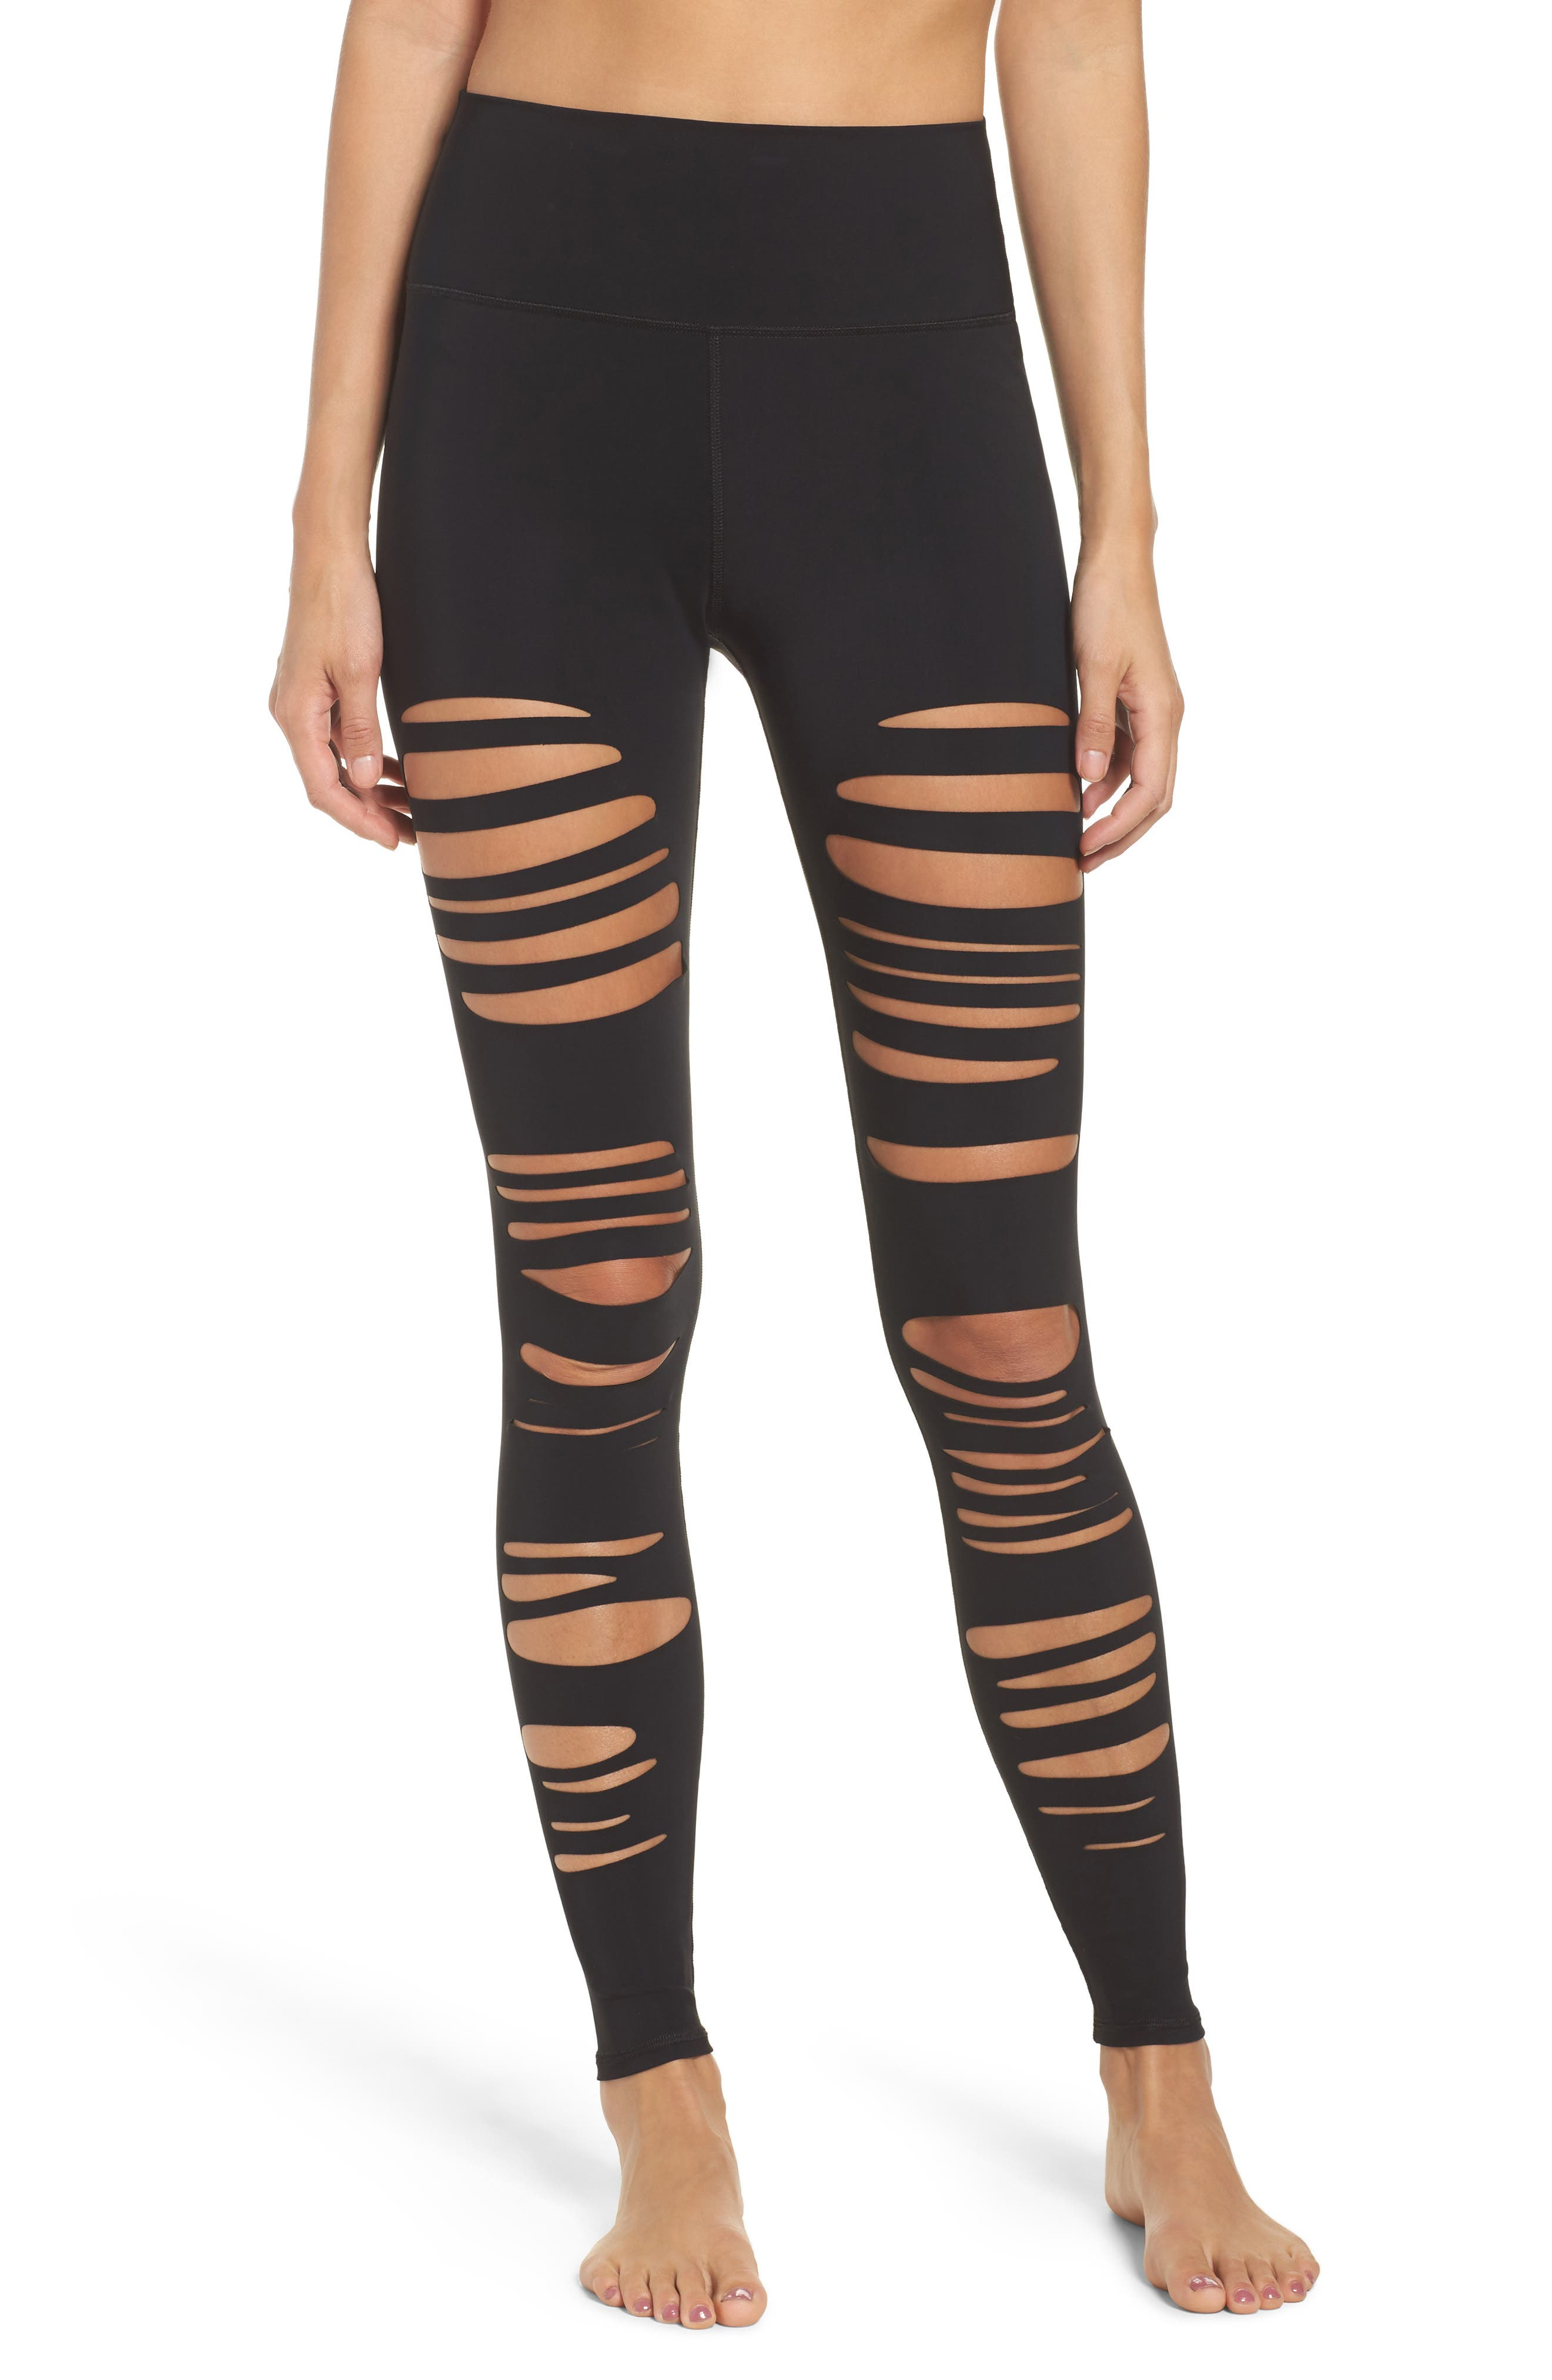 Alo Extreme Ripped Warrior High Waist Leggings